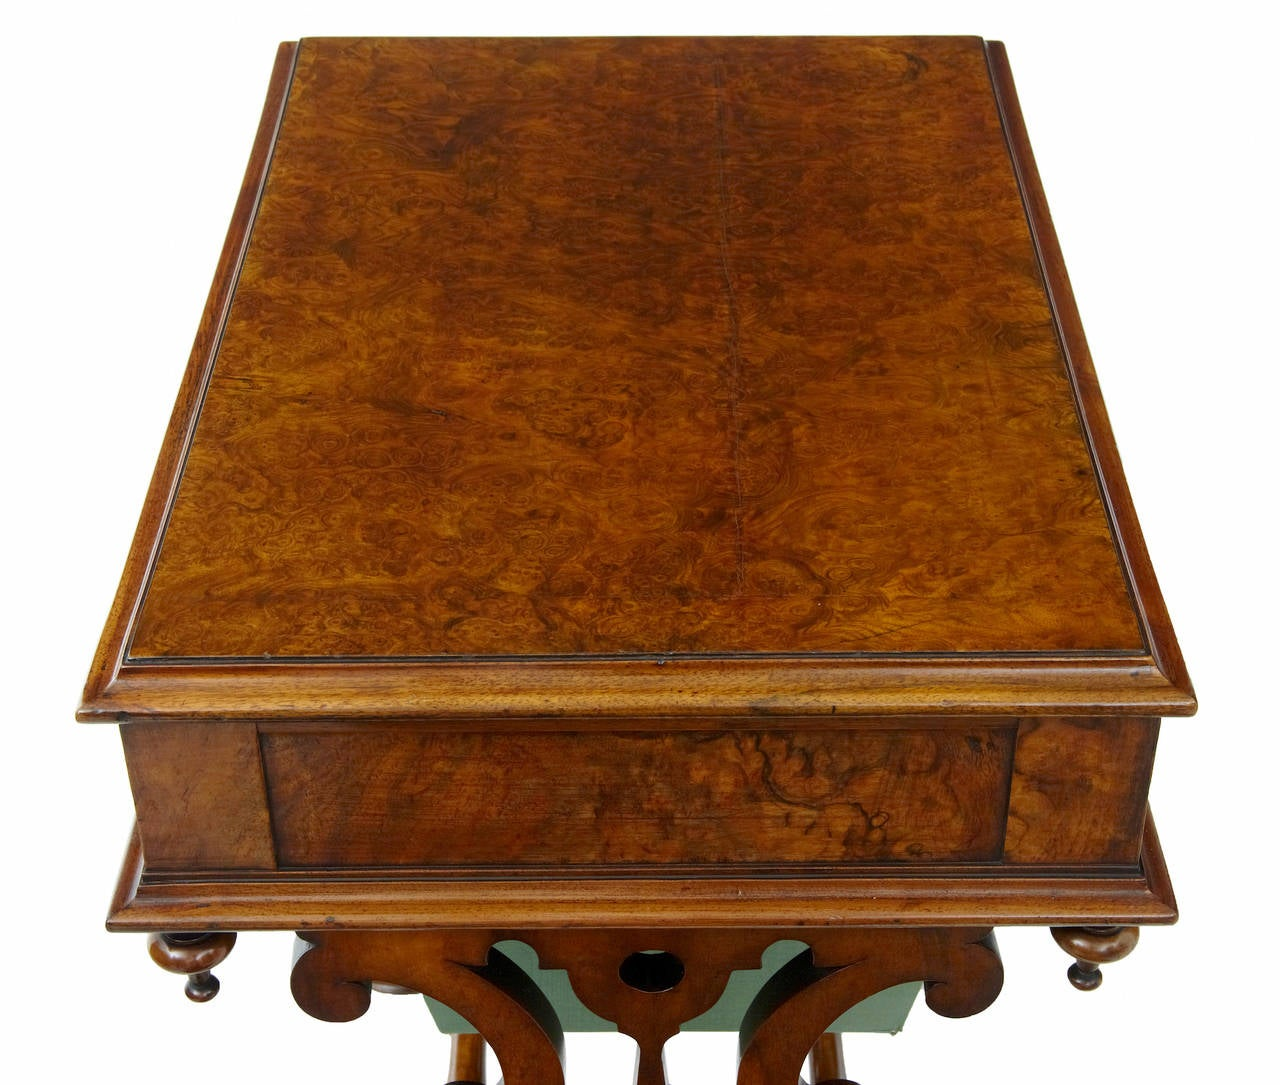 19th Century Walnut Work Occasional Table In Good Condition For Sale In Debenham, Suffolk